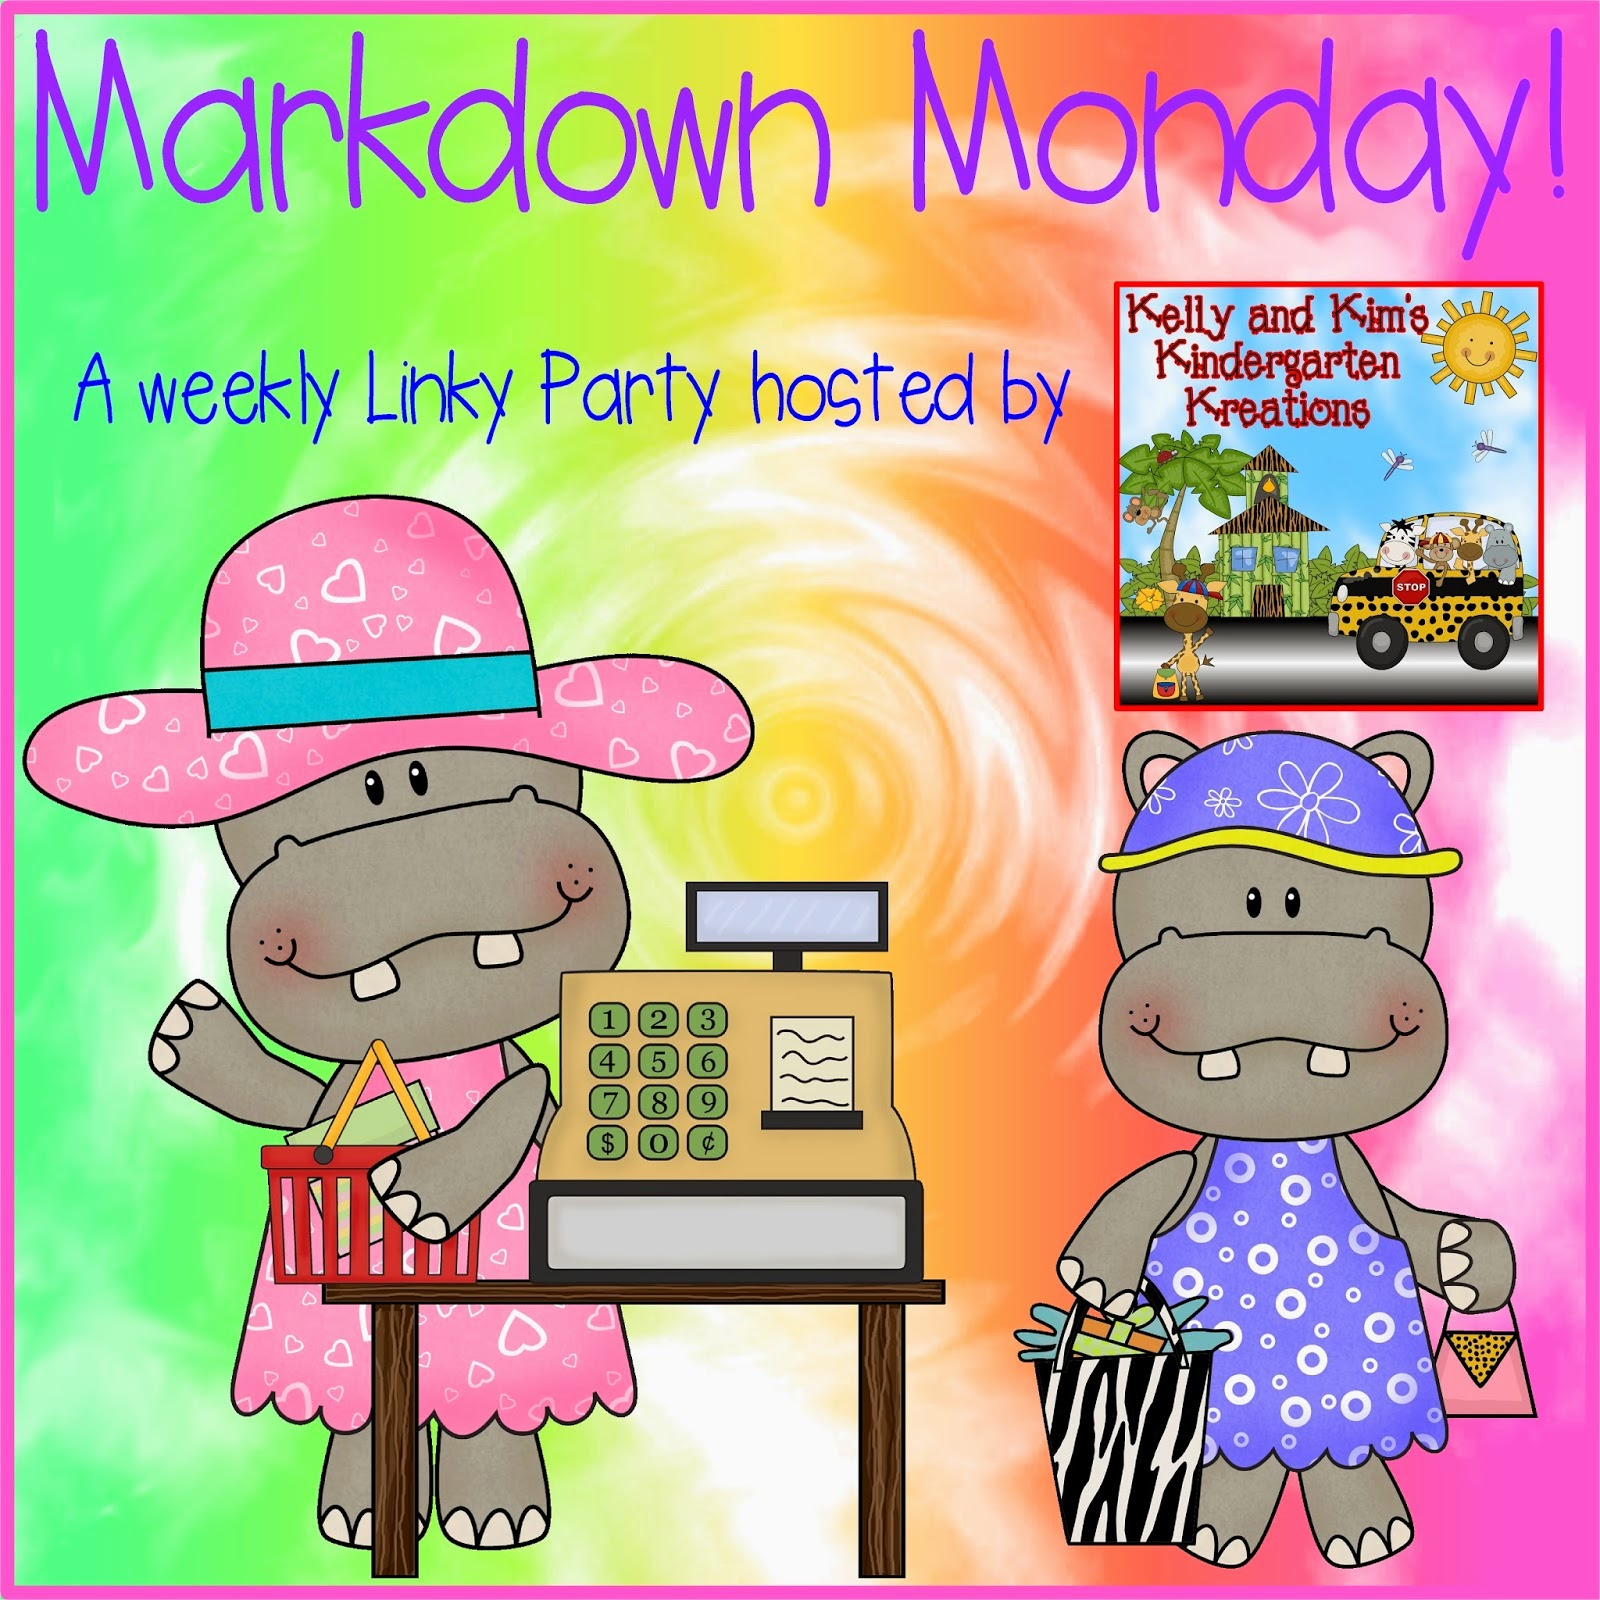 http://kellyandkimskindergarten.blogspot.com/2014/07/markdown-monday-linky-party-july-21st.html